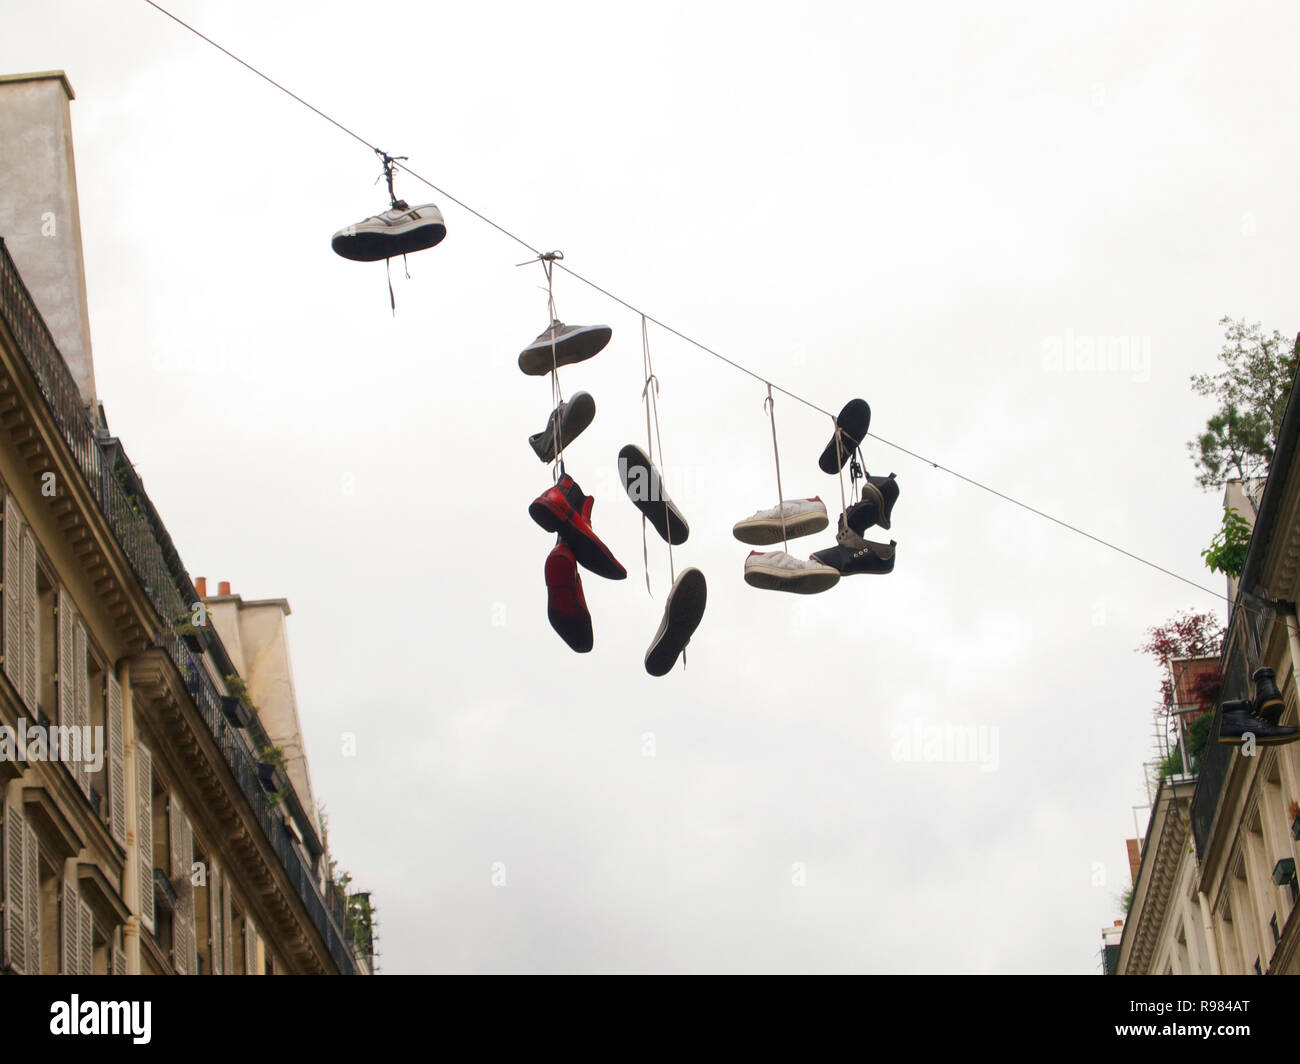 Sneakers hanging over a street in Paris, France - Stock Image